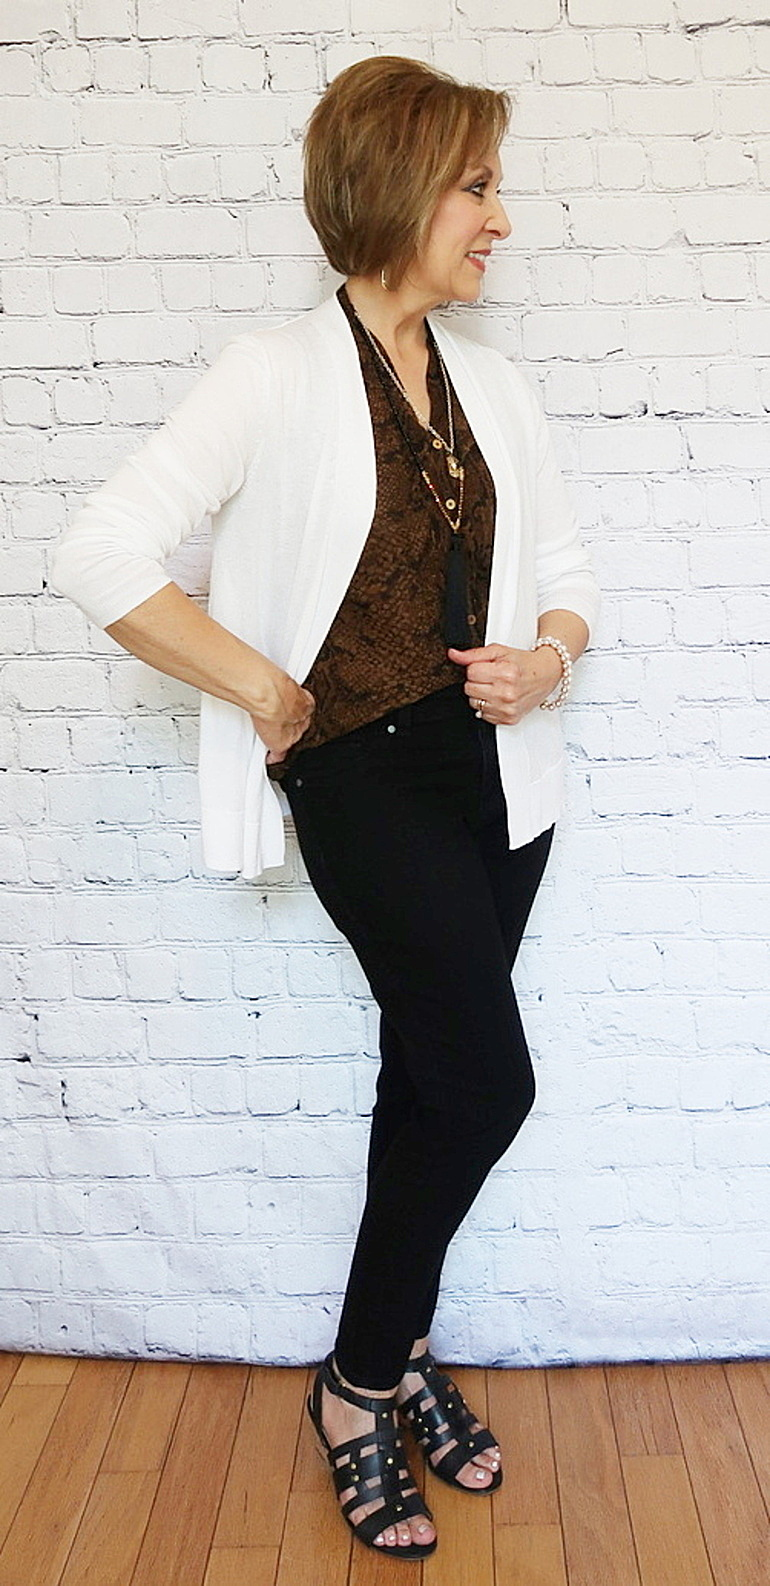 OOTD, Over 50 Fashion, Business Casual, Black and Brown with White Cardigan, 50 With Flair